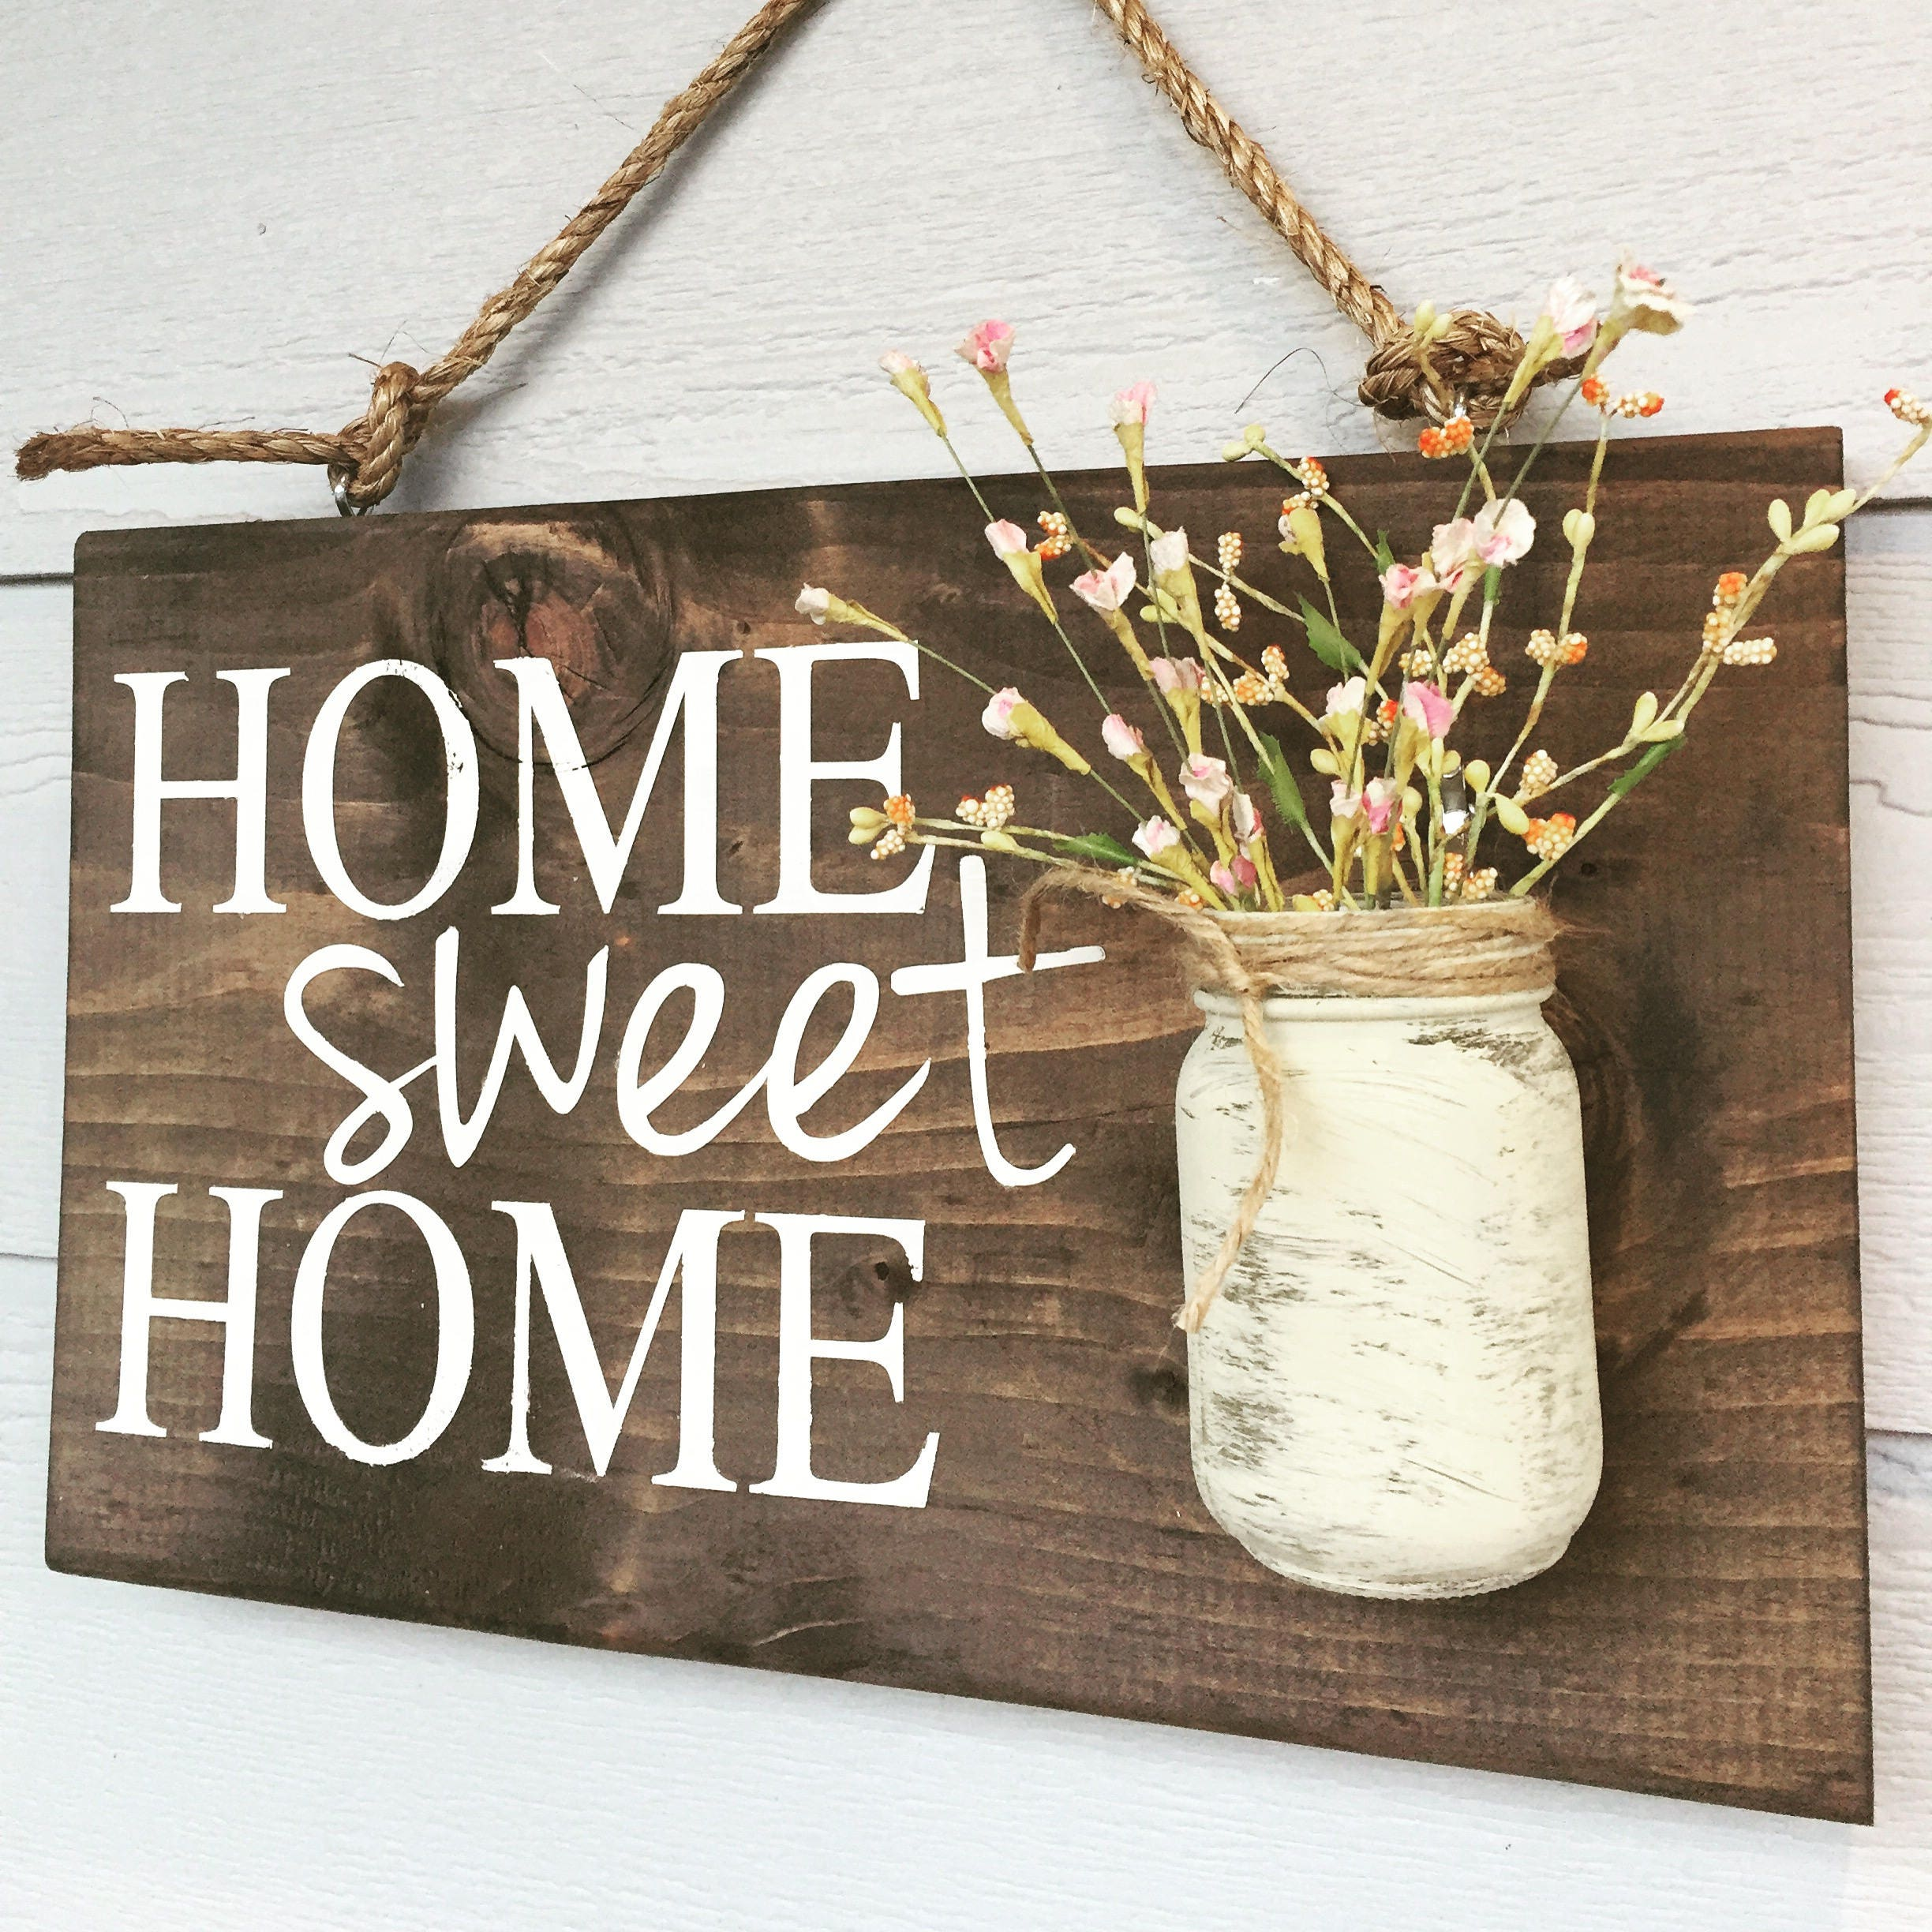 Home sweet home rustic front door sign decor outdoor signs request a custom order and have something made just for you rubansaba